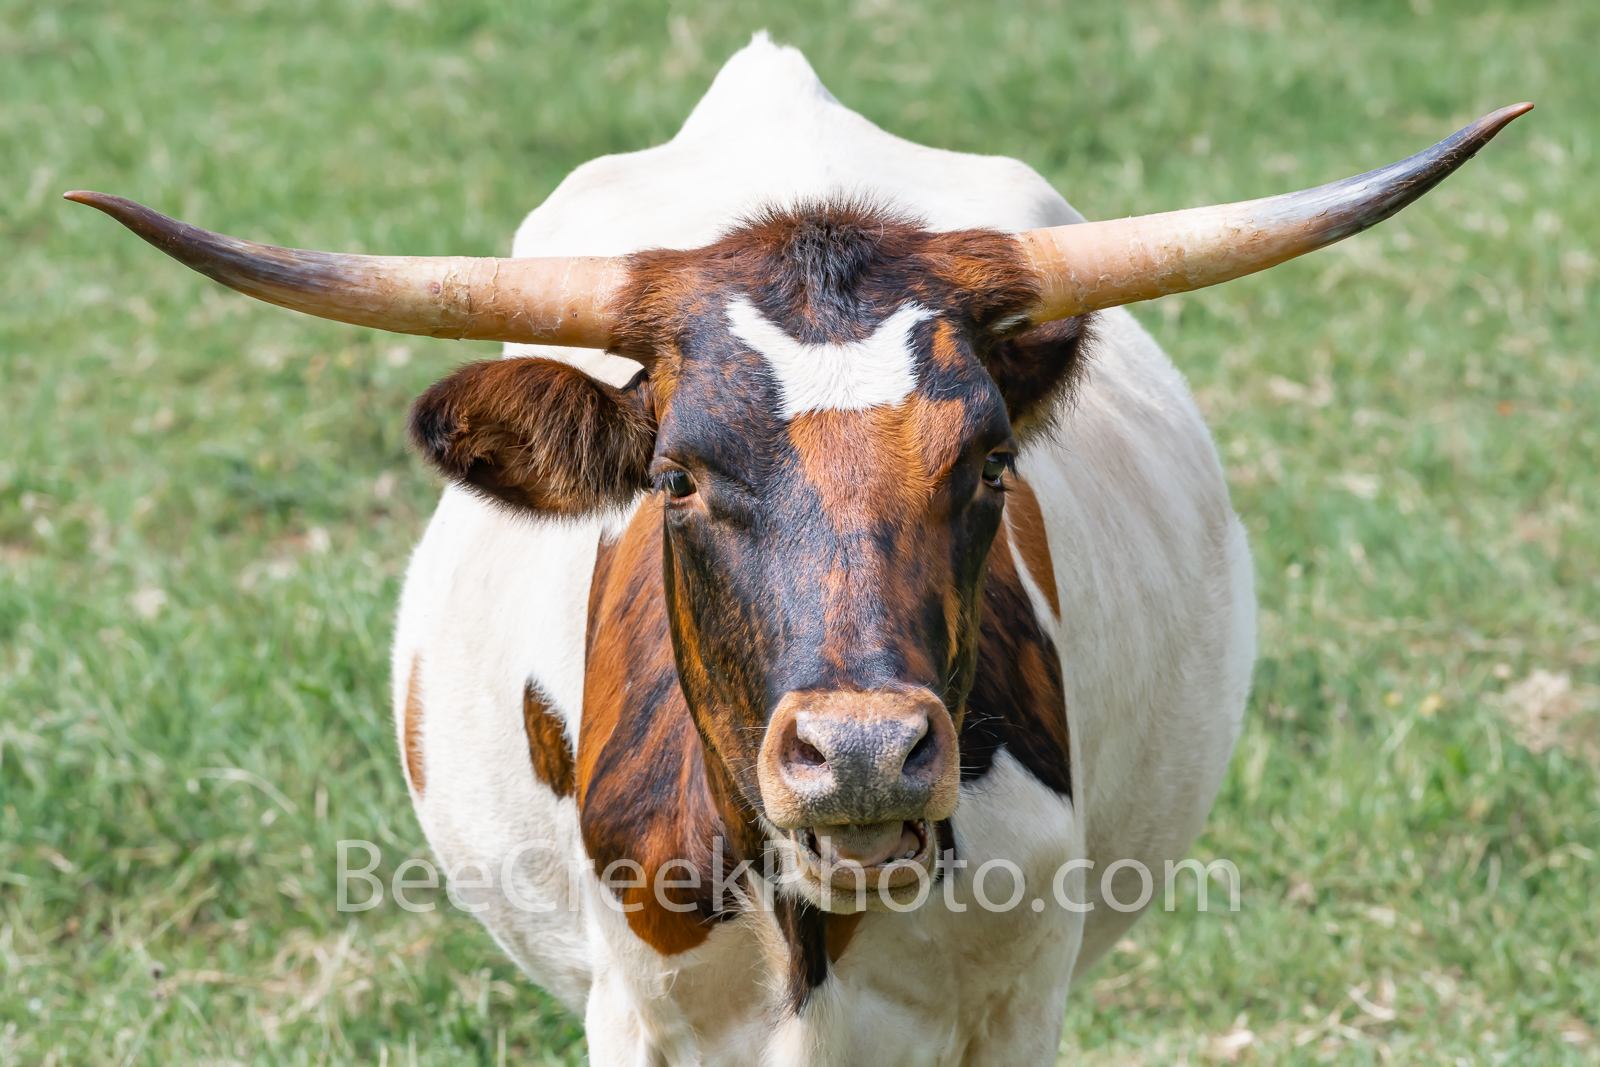 Long Horn Cattle  - This was a friendly longhorn that came right up to us looking for some cow candy most likely.  In any case...